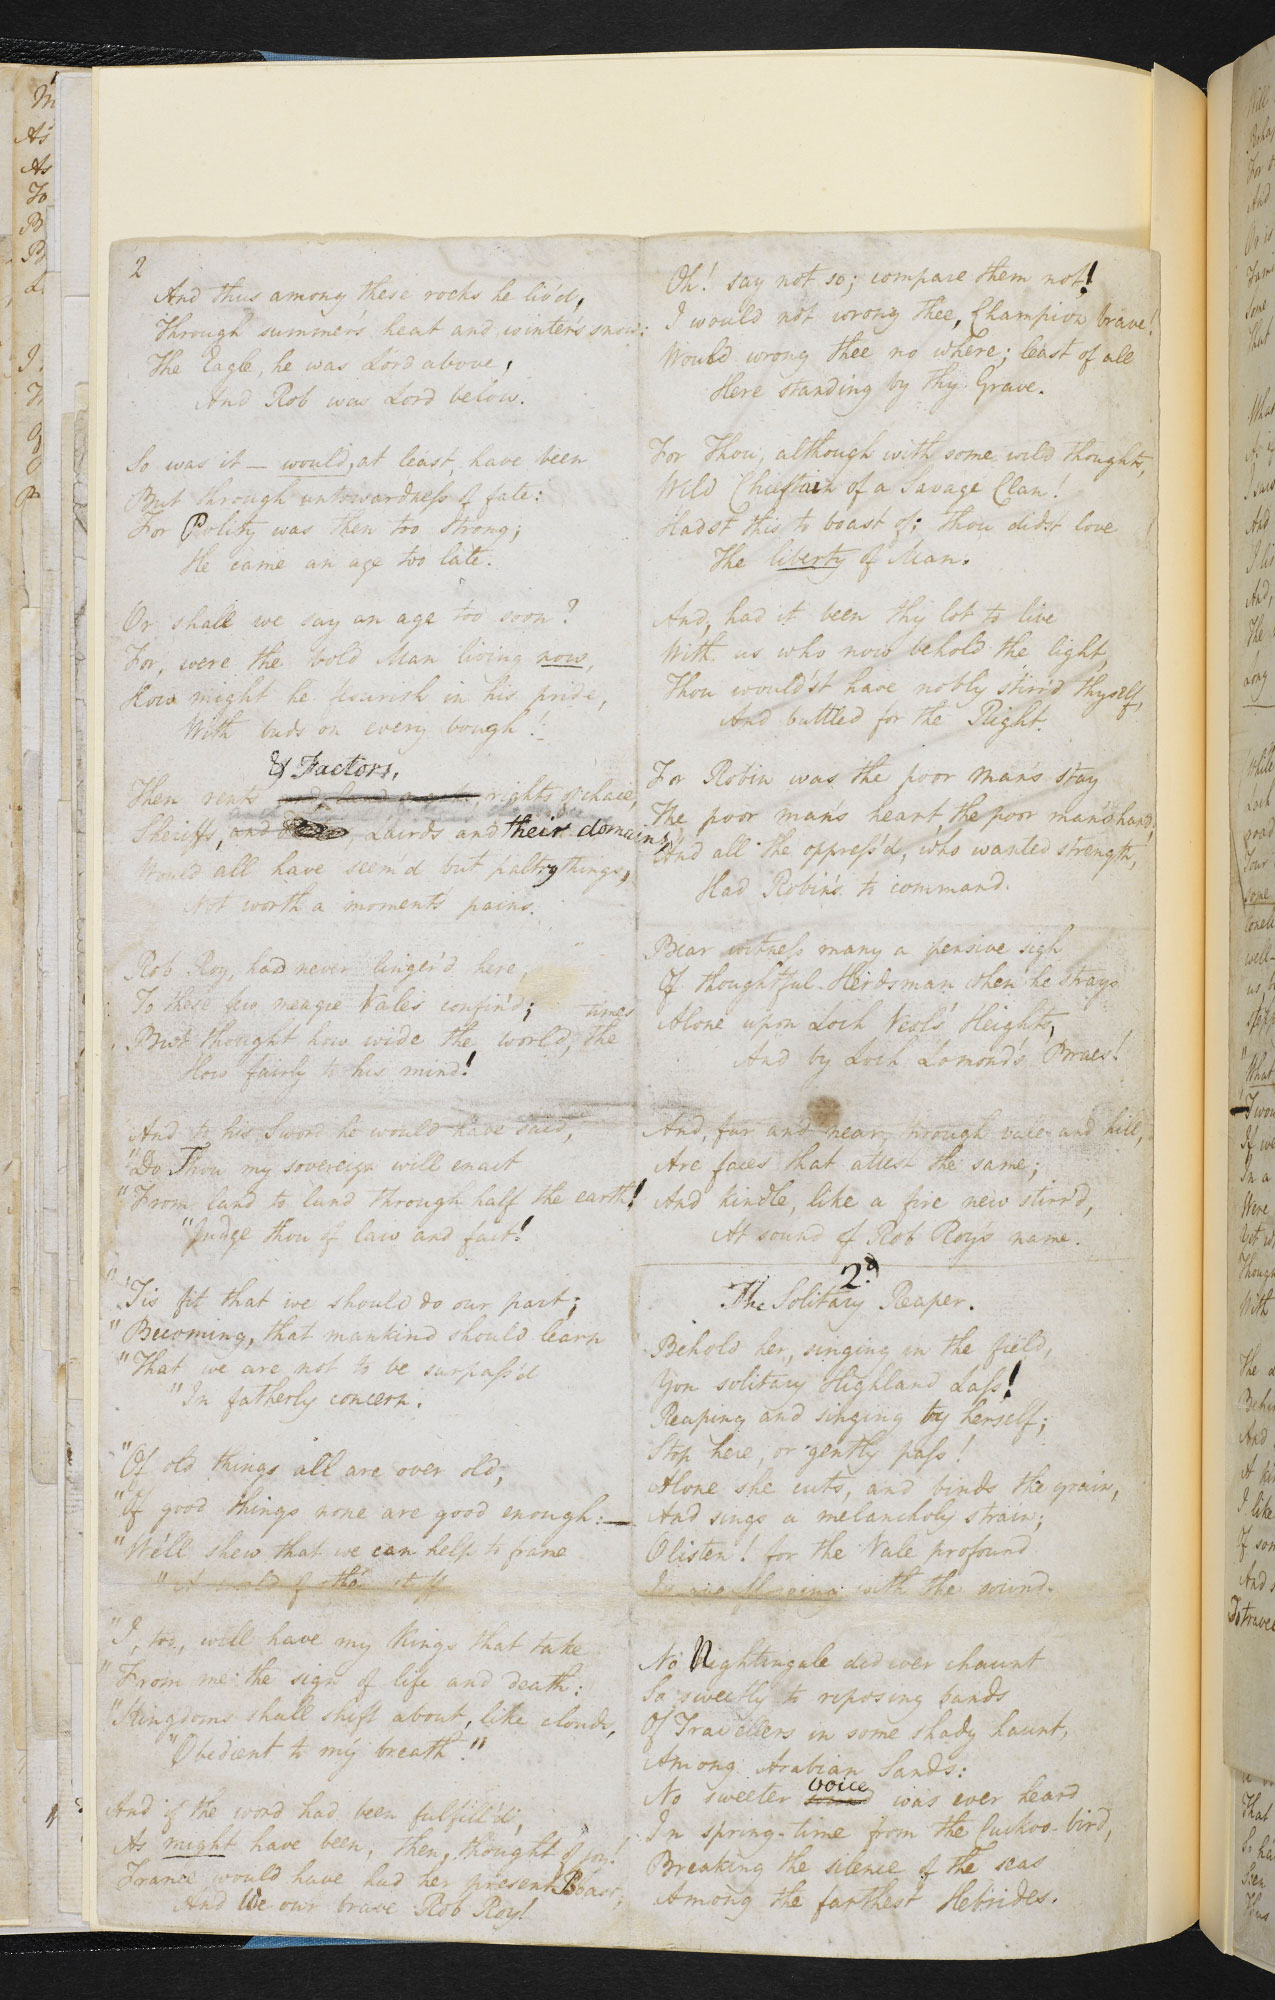 Manuscript of the printer's copy of 'The Solitary Reaper' by William Wordsworth